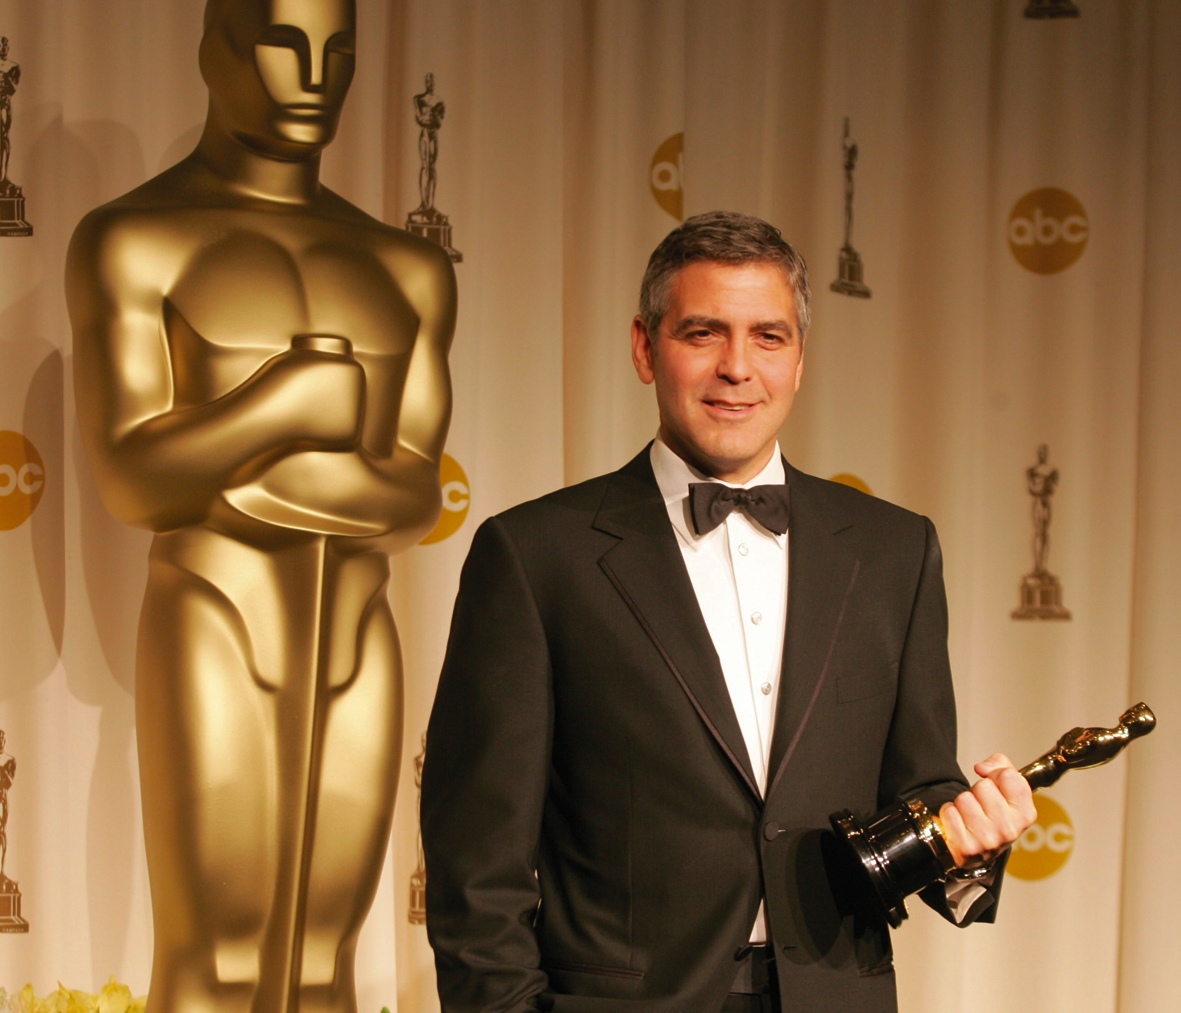 1622047064 800 George Clooney turned 60 ten days in the life of